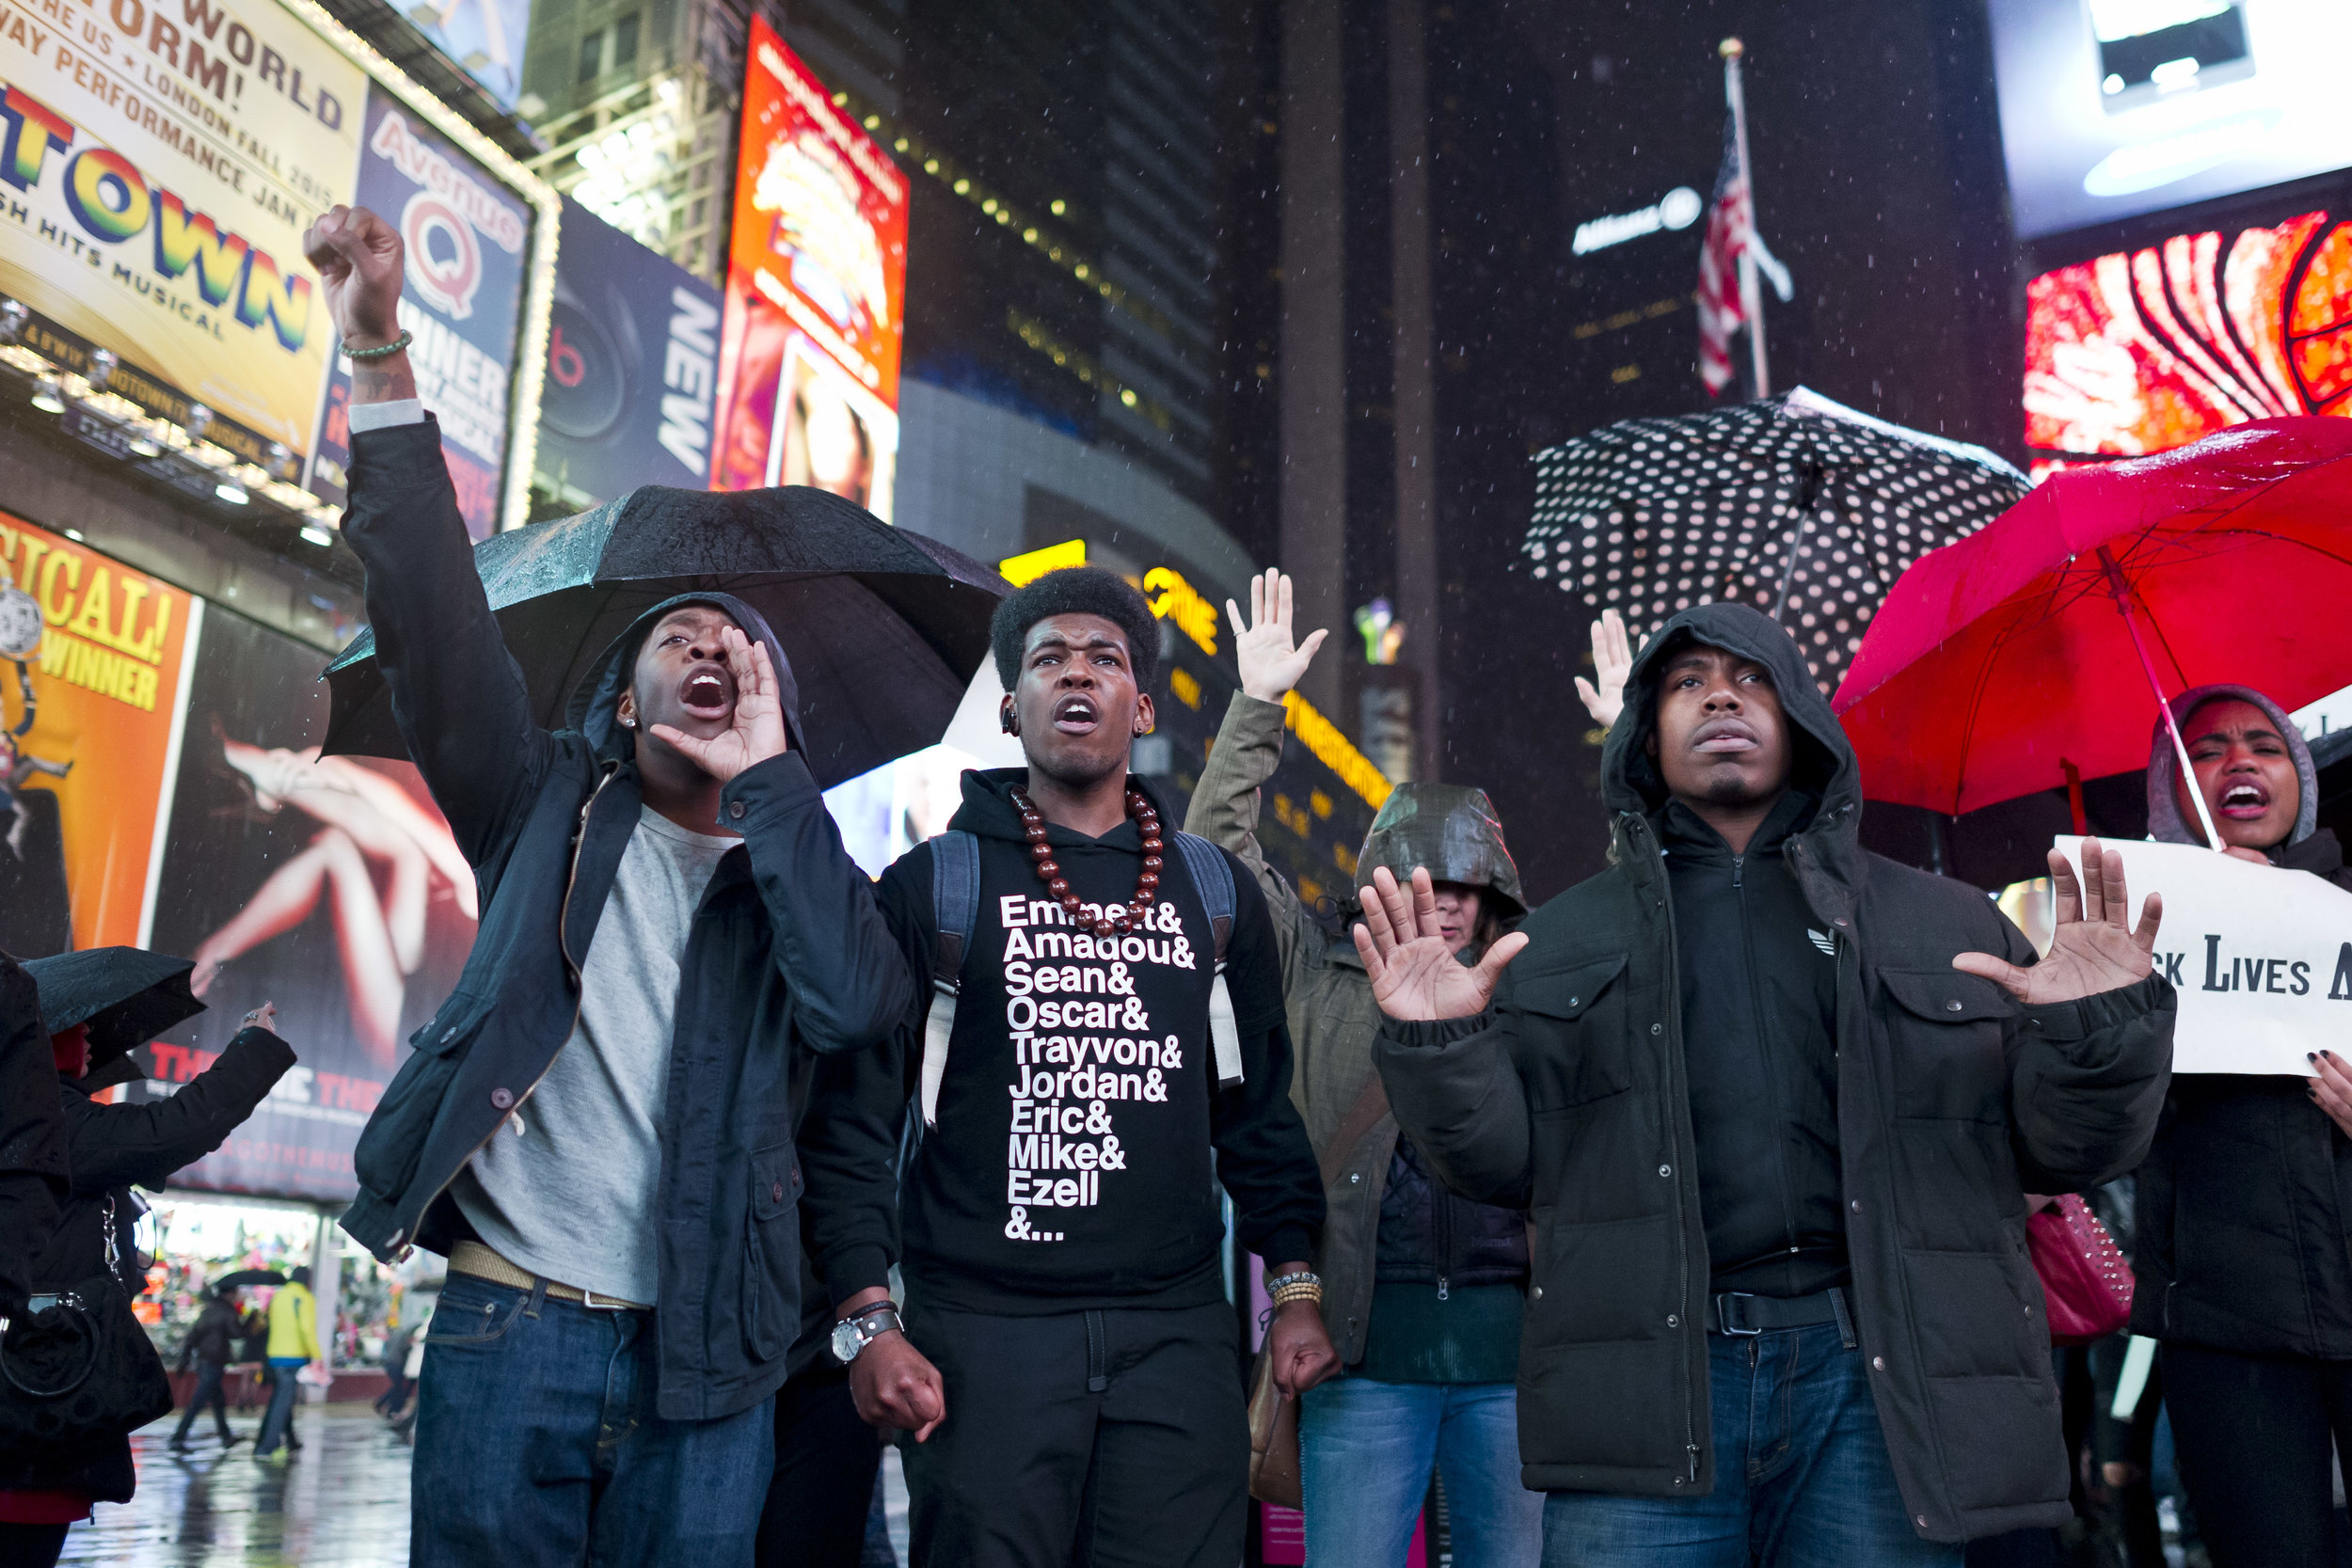 Demonstrators gather in the rain in the middle of Times Square on December 6th, 2014. Weeks of protest followed a Staten Island grand jury's decision on December 3rd 2014 not to indict Officer Daniel Pantaleo in the killing of Eric Garner.